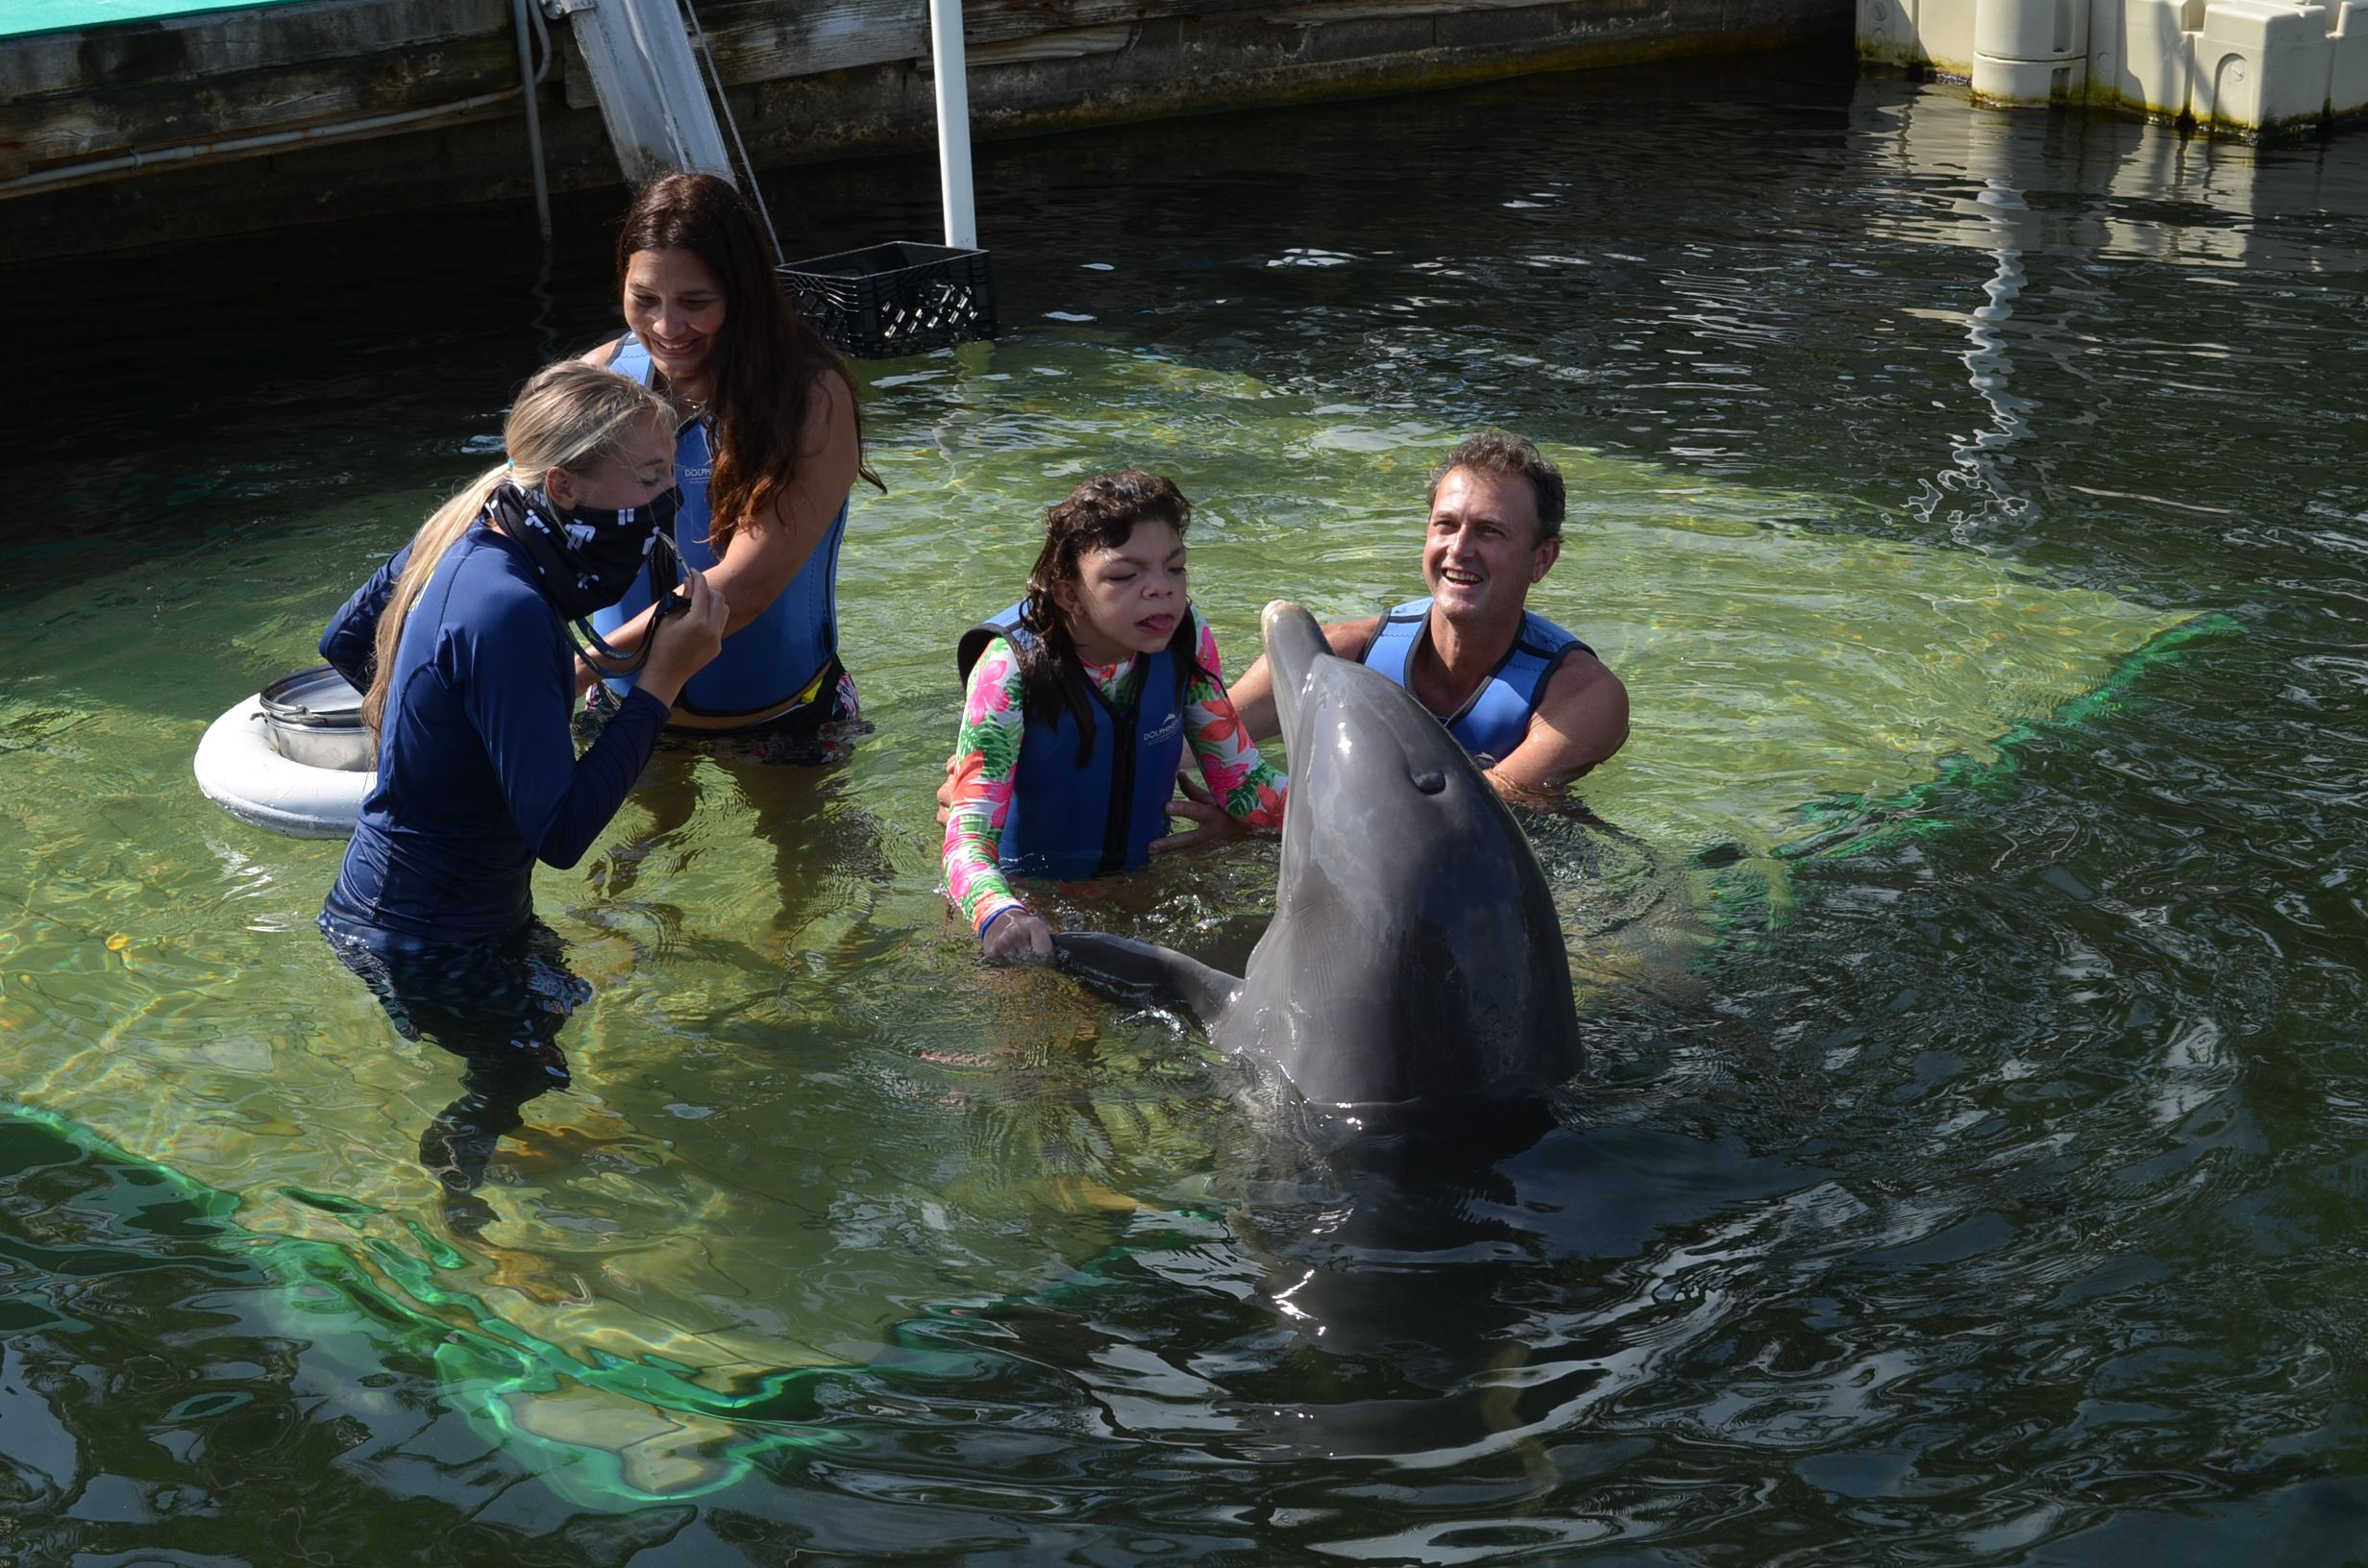 Boca girl's dream to swim with dolphins comes true, thanks to Make-A-Wish